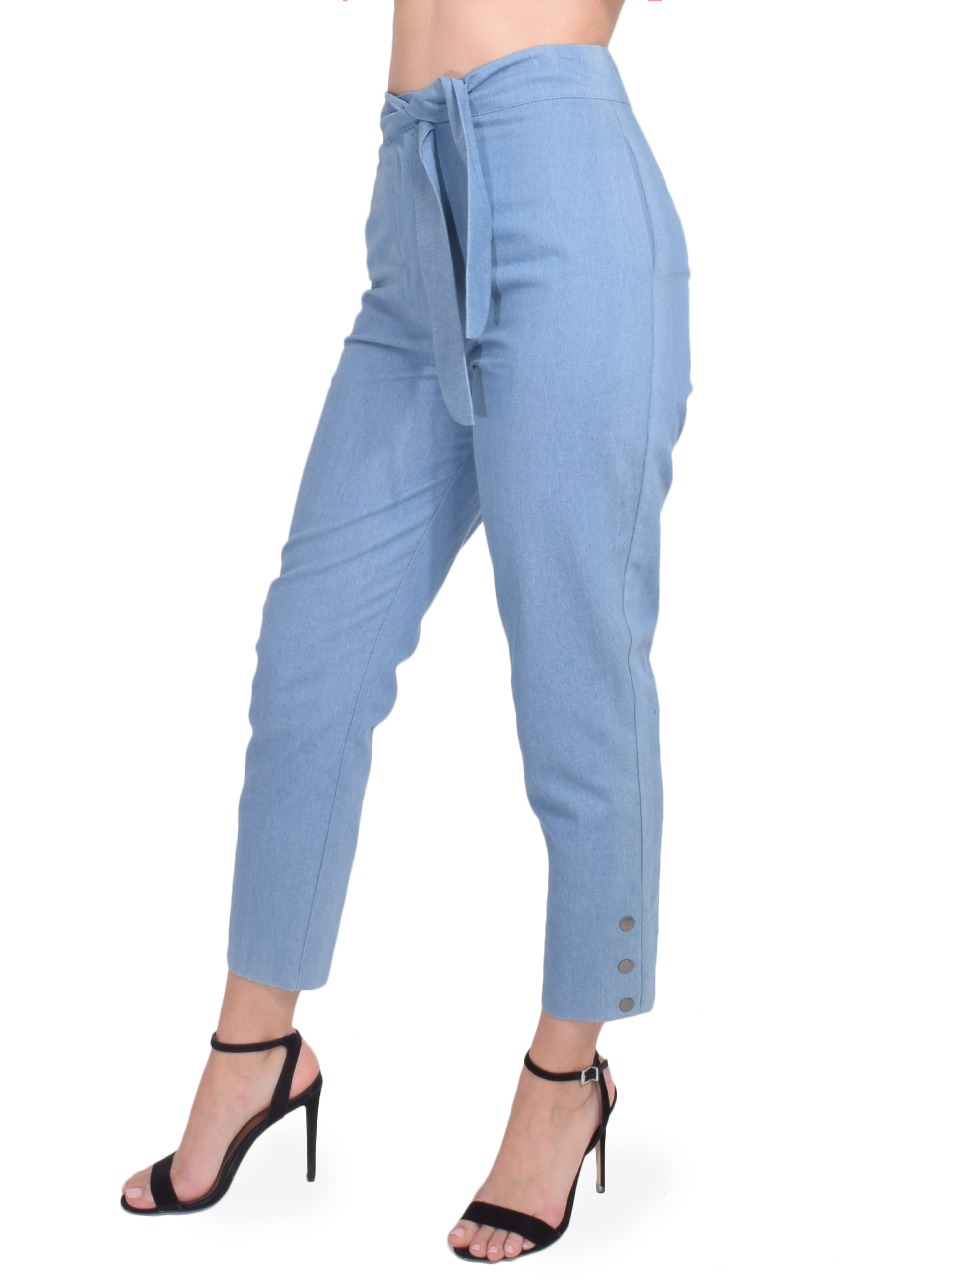 Karina Grimaldi Stella Denim Pants Side View